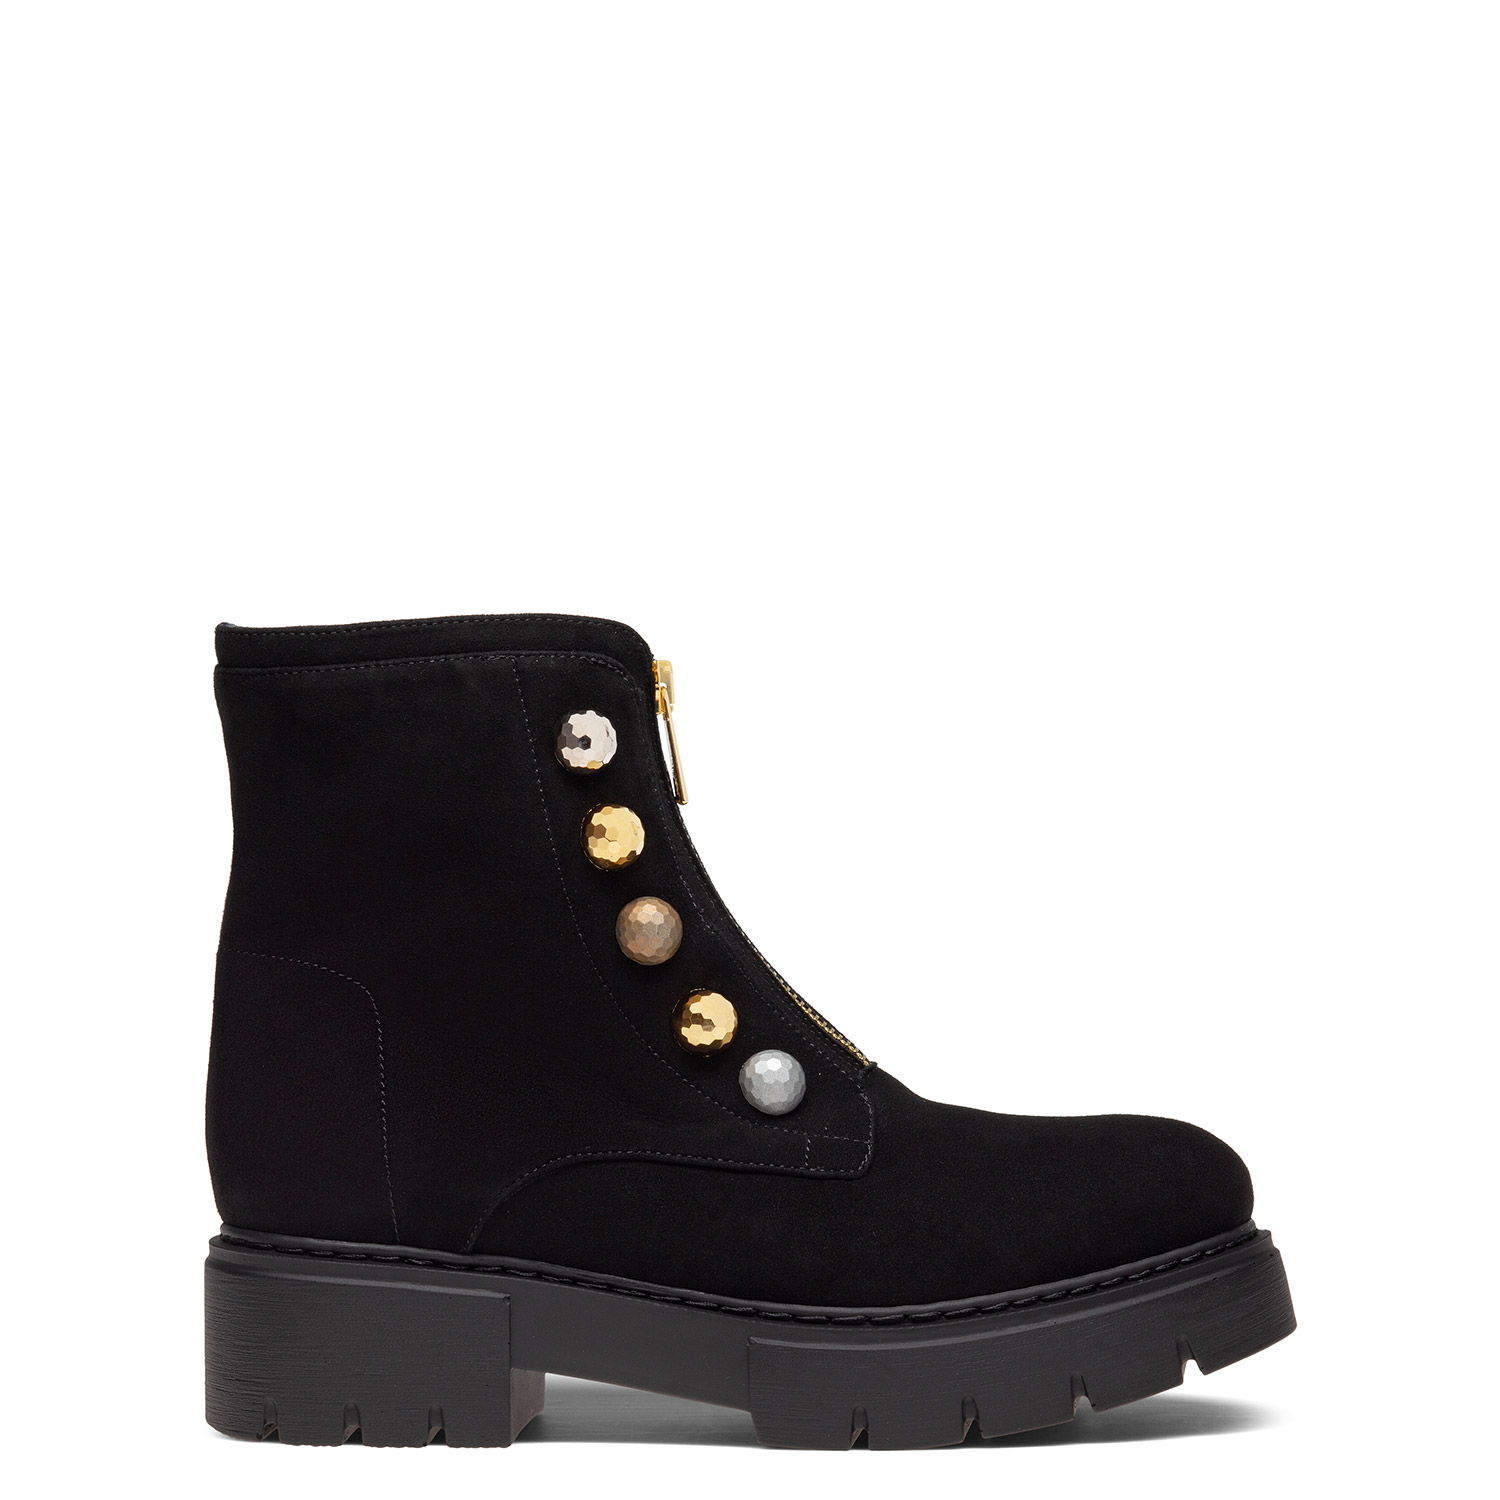 Women's ankle boots PAZOLINI CR-BUL3-1